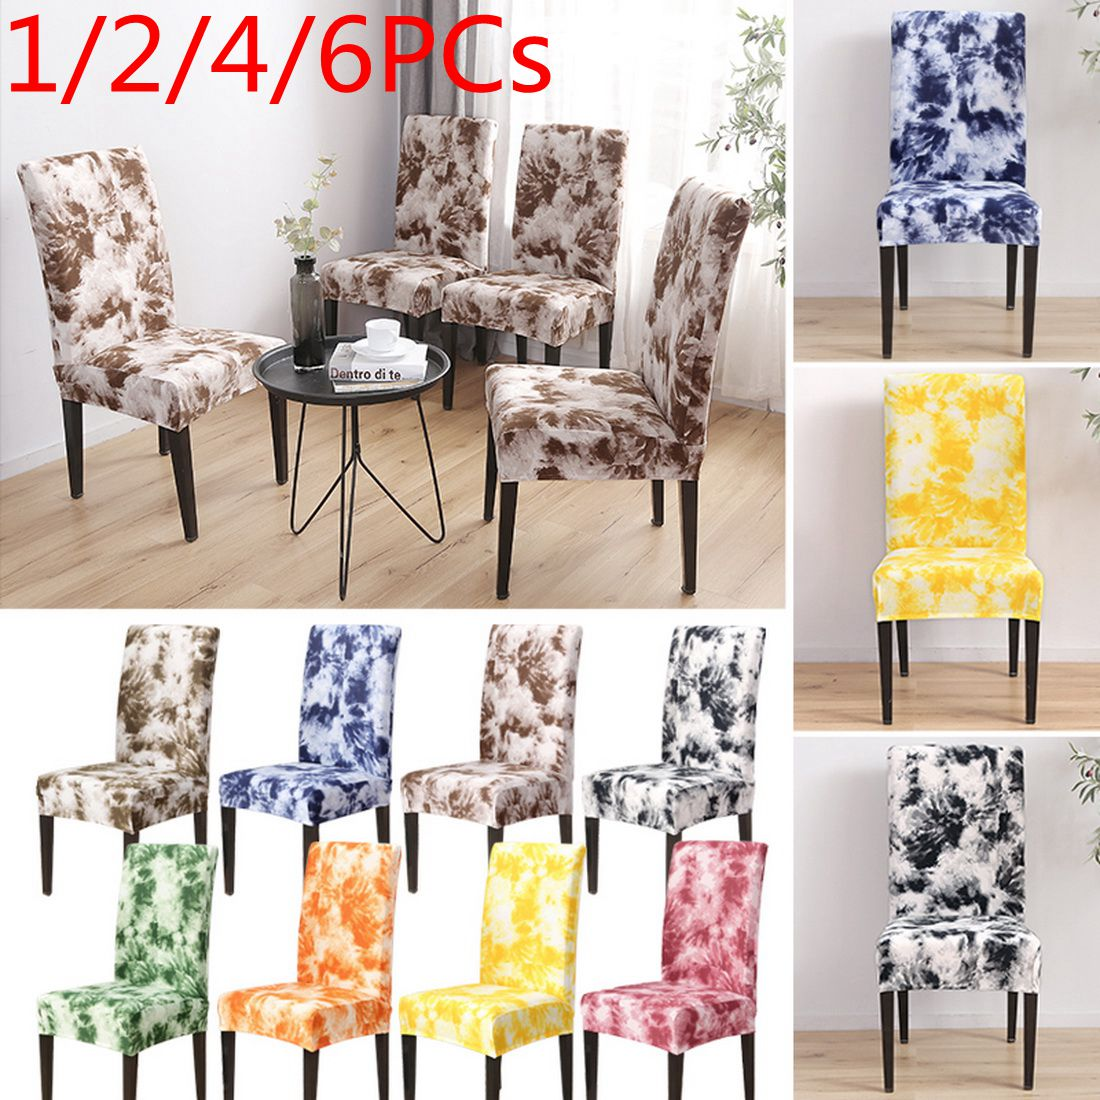 1 2 4 Pcs Nordic Style Print Chair Covers Home Dining Floral Spandex Chair Cover Slipcovers Home Garden Pumpenscout De